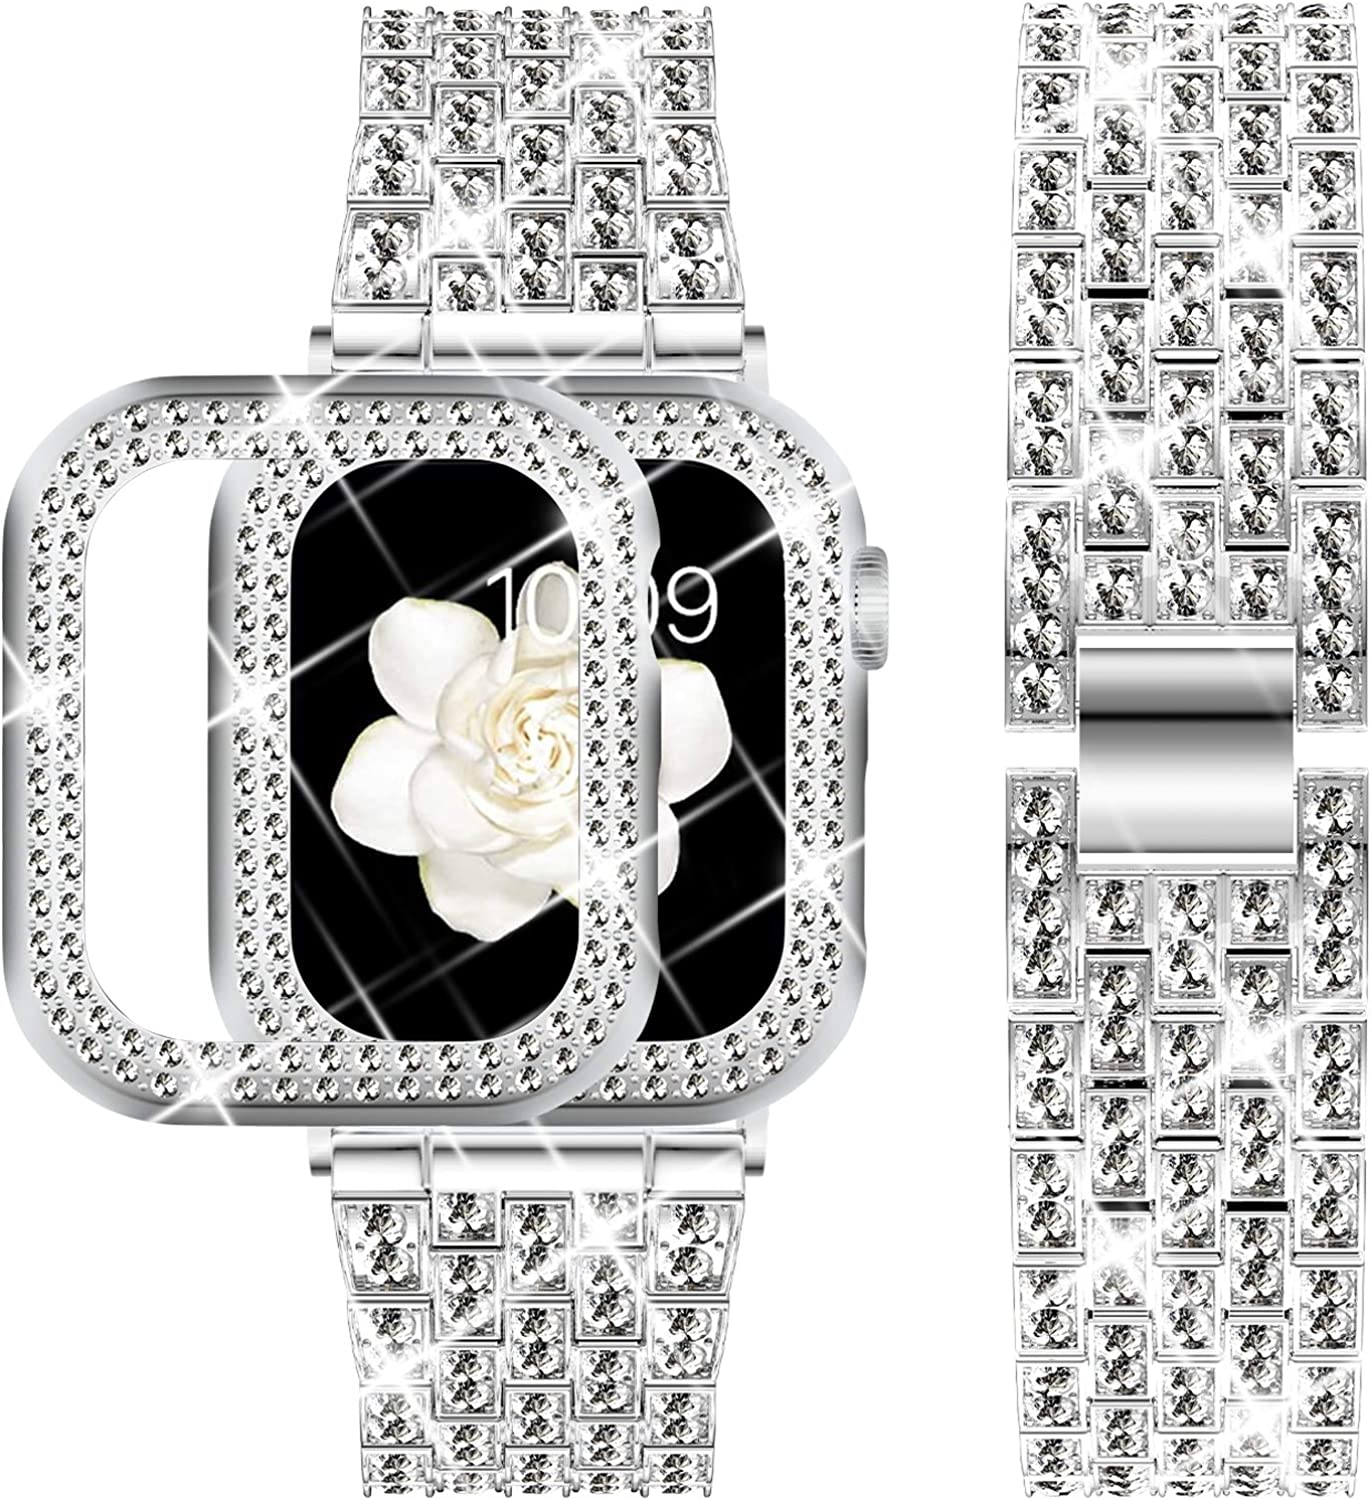 DABAOZA Compatible Apple Watch Band 40mm 44mm with Case, Bling Women Girl Dressy Crystal Band with Shiny Protective Bling Bumper Frame for iWatch SE Series 6 5 4